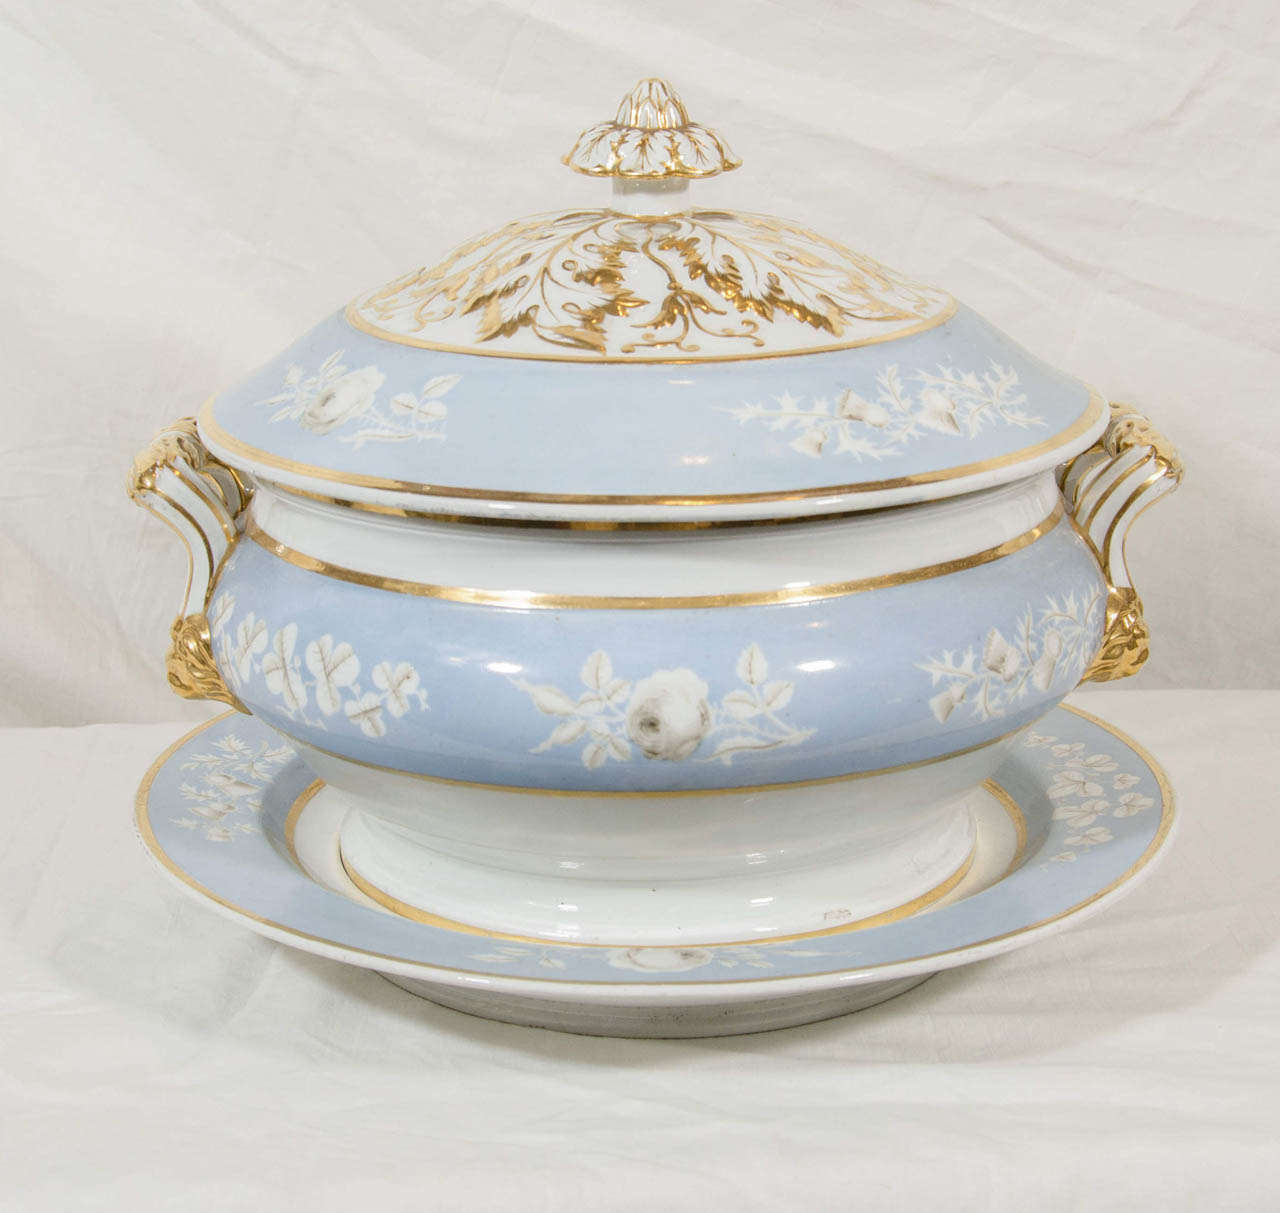 """A fine pale blue, early 19th century, Worcester soup tureen and stand painted with grisaille roses and outstanding lush gilding on the cover, finial, and handles. Marked """"Chamberlain's Worcester No 155 New Bond Street London""""."""